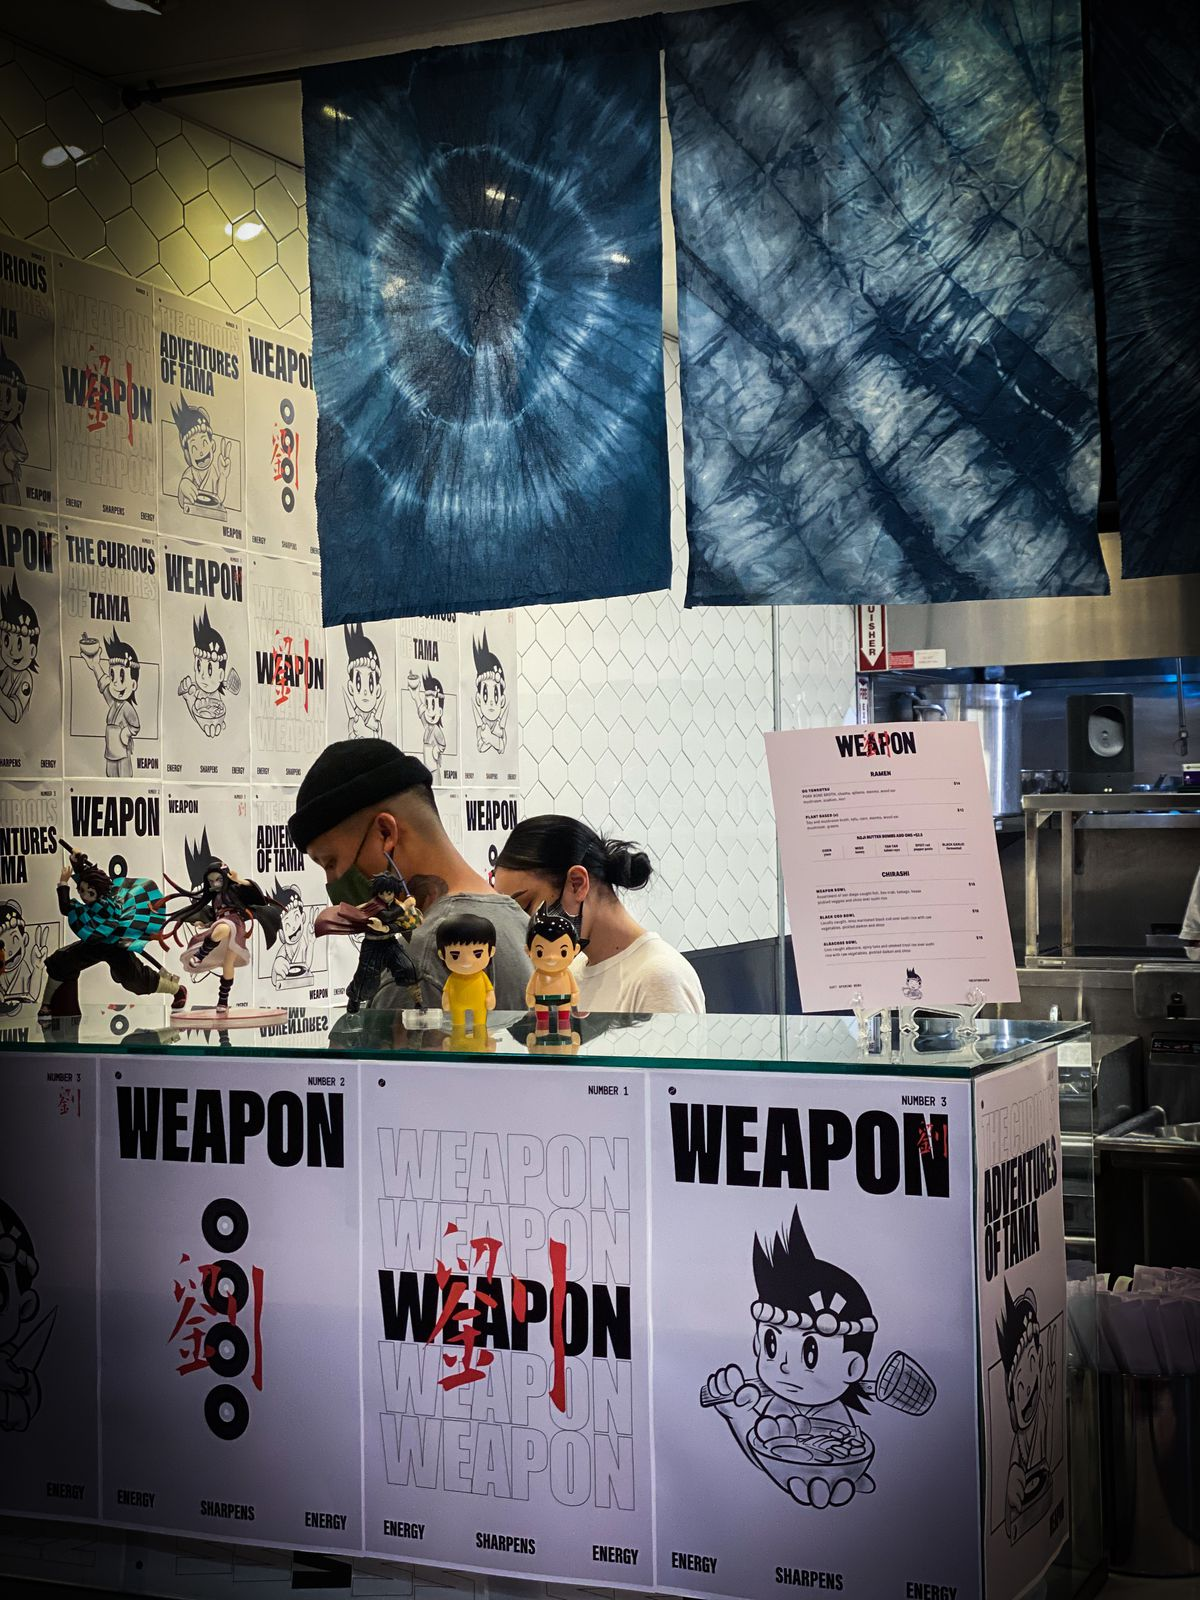 Weapon stand at Liberty Public Market